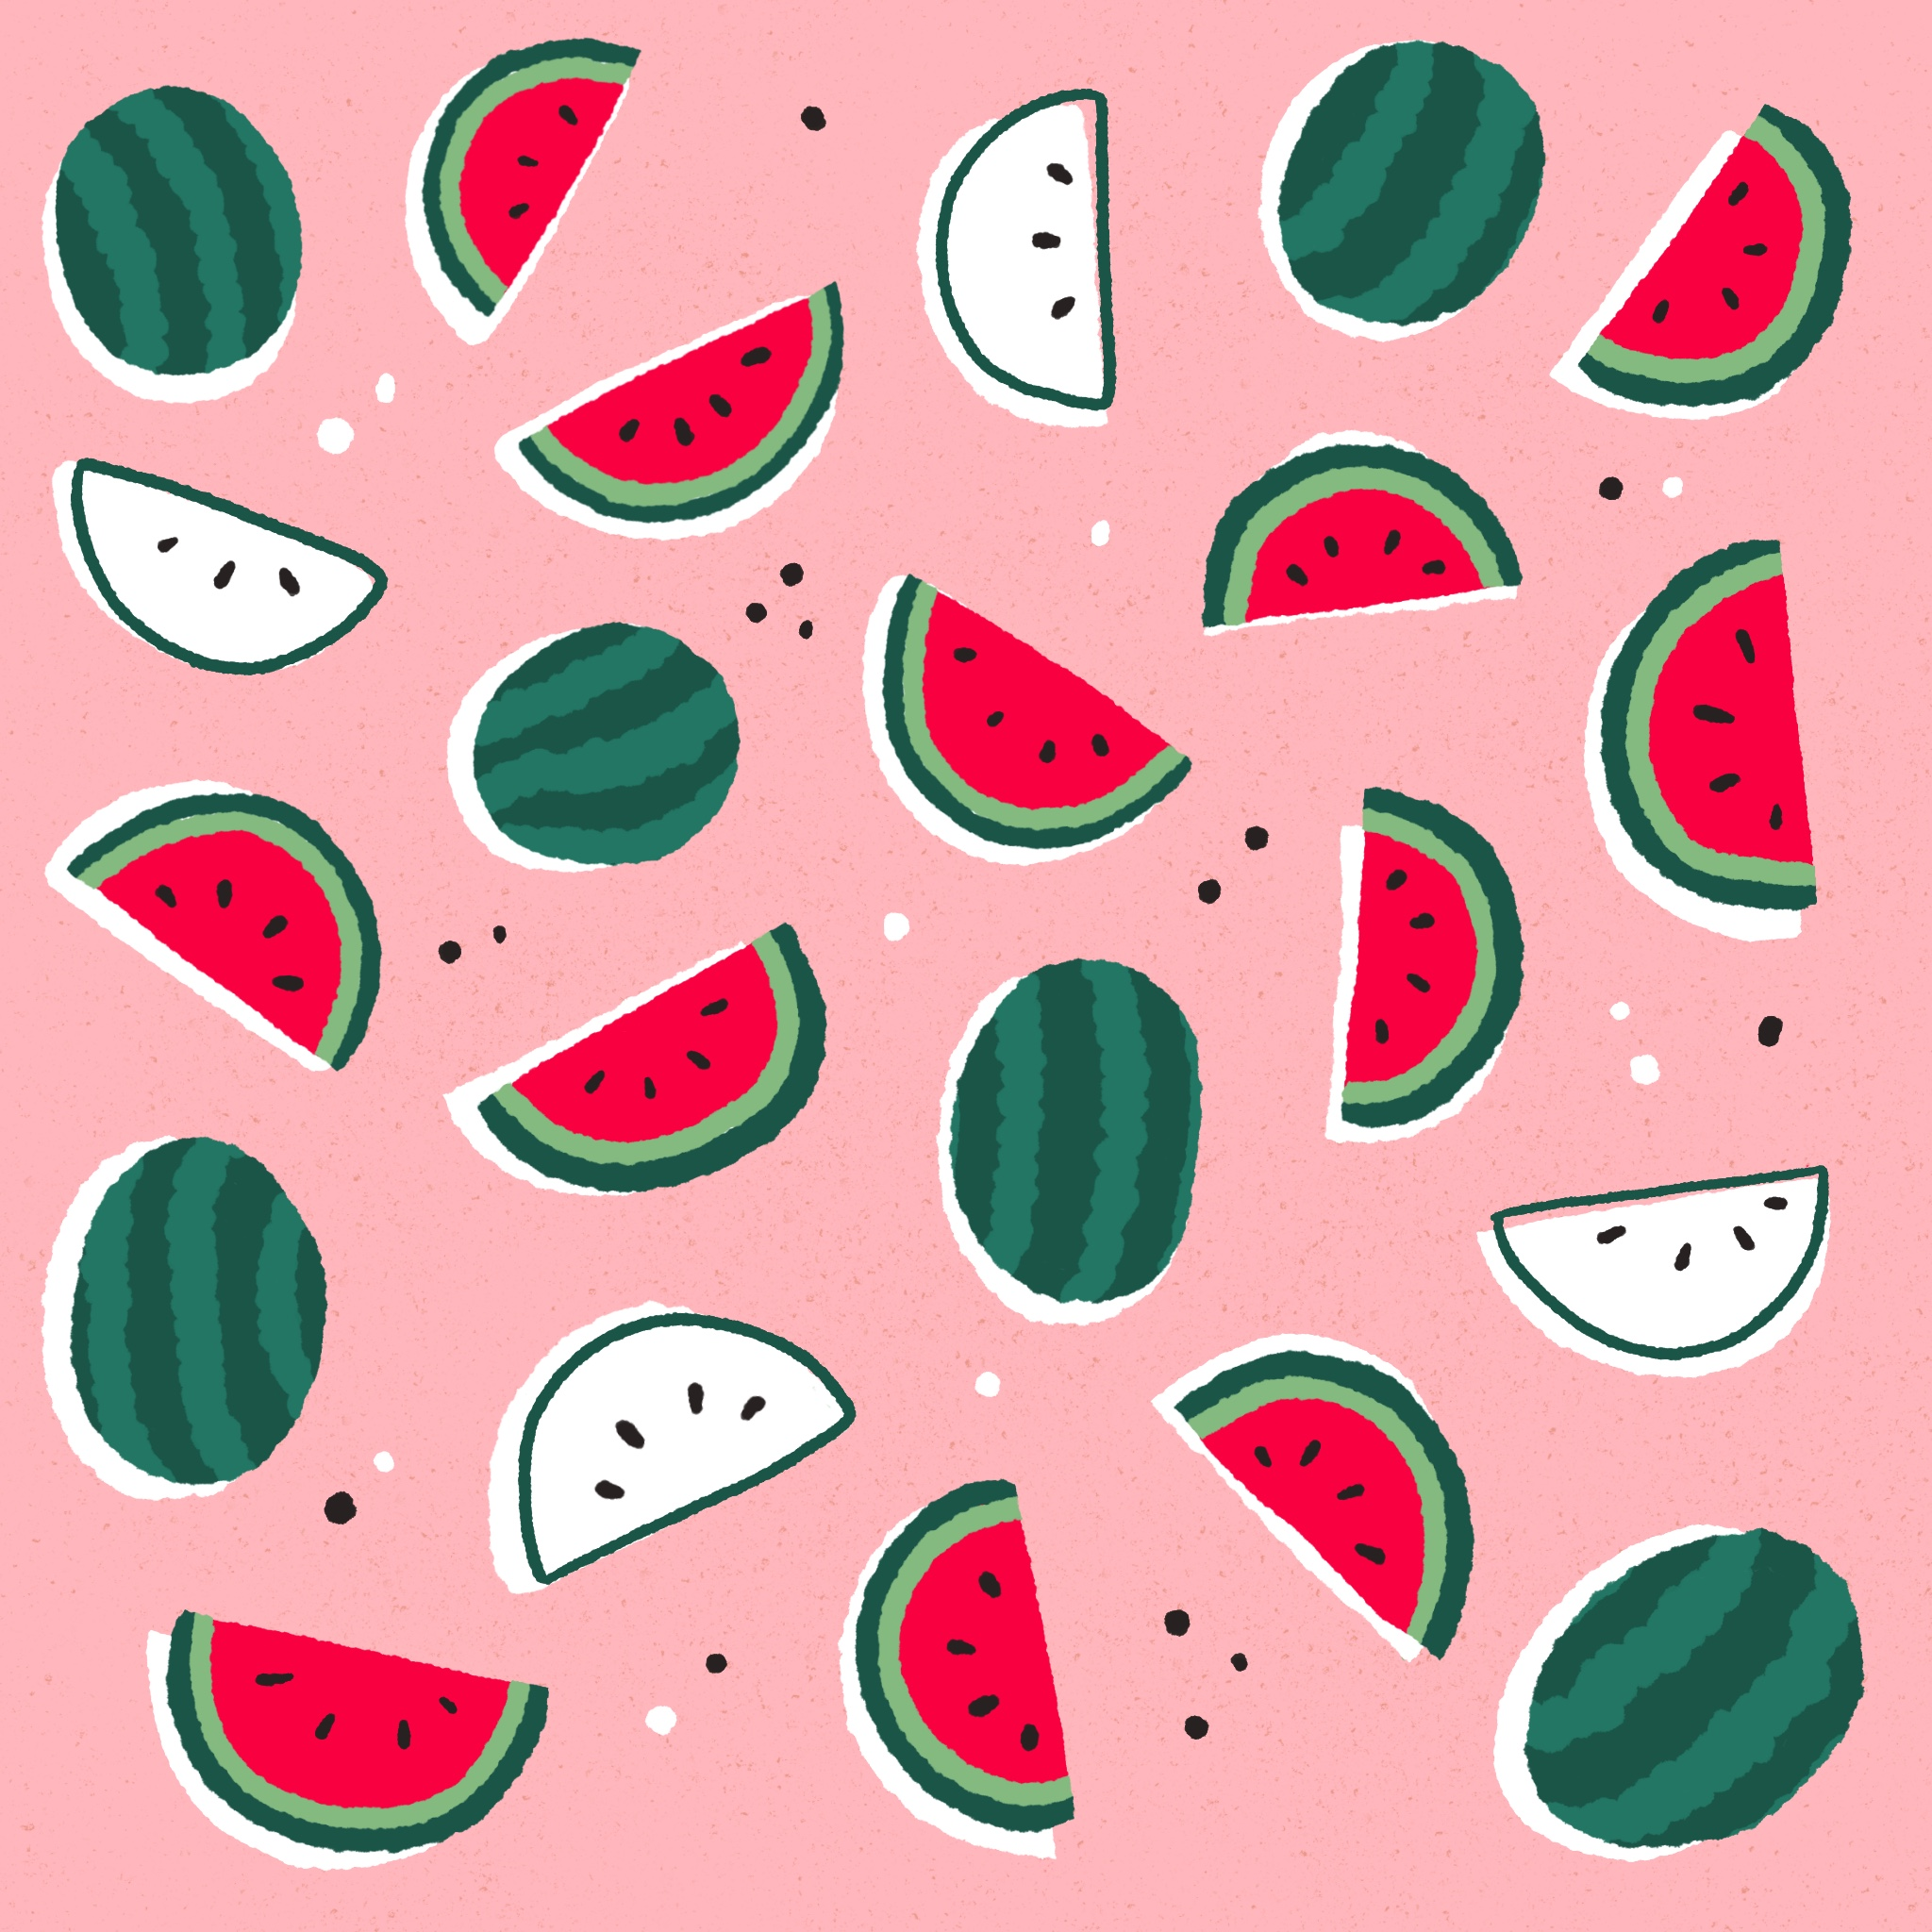 An illustrated pattern of watermelon